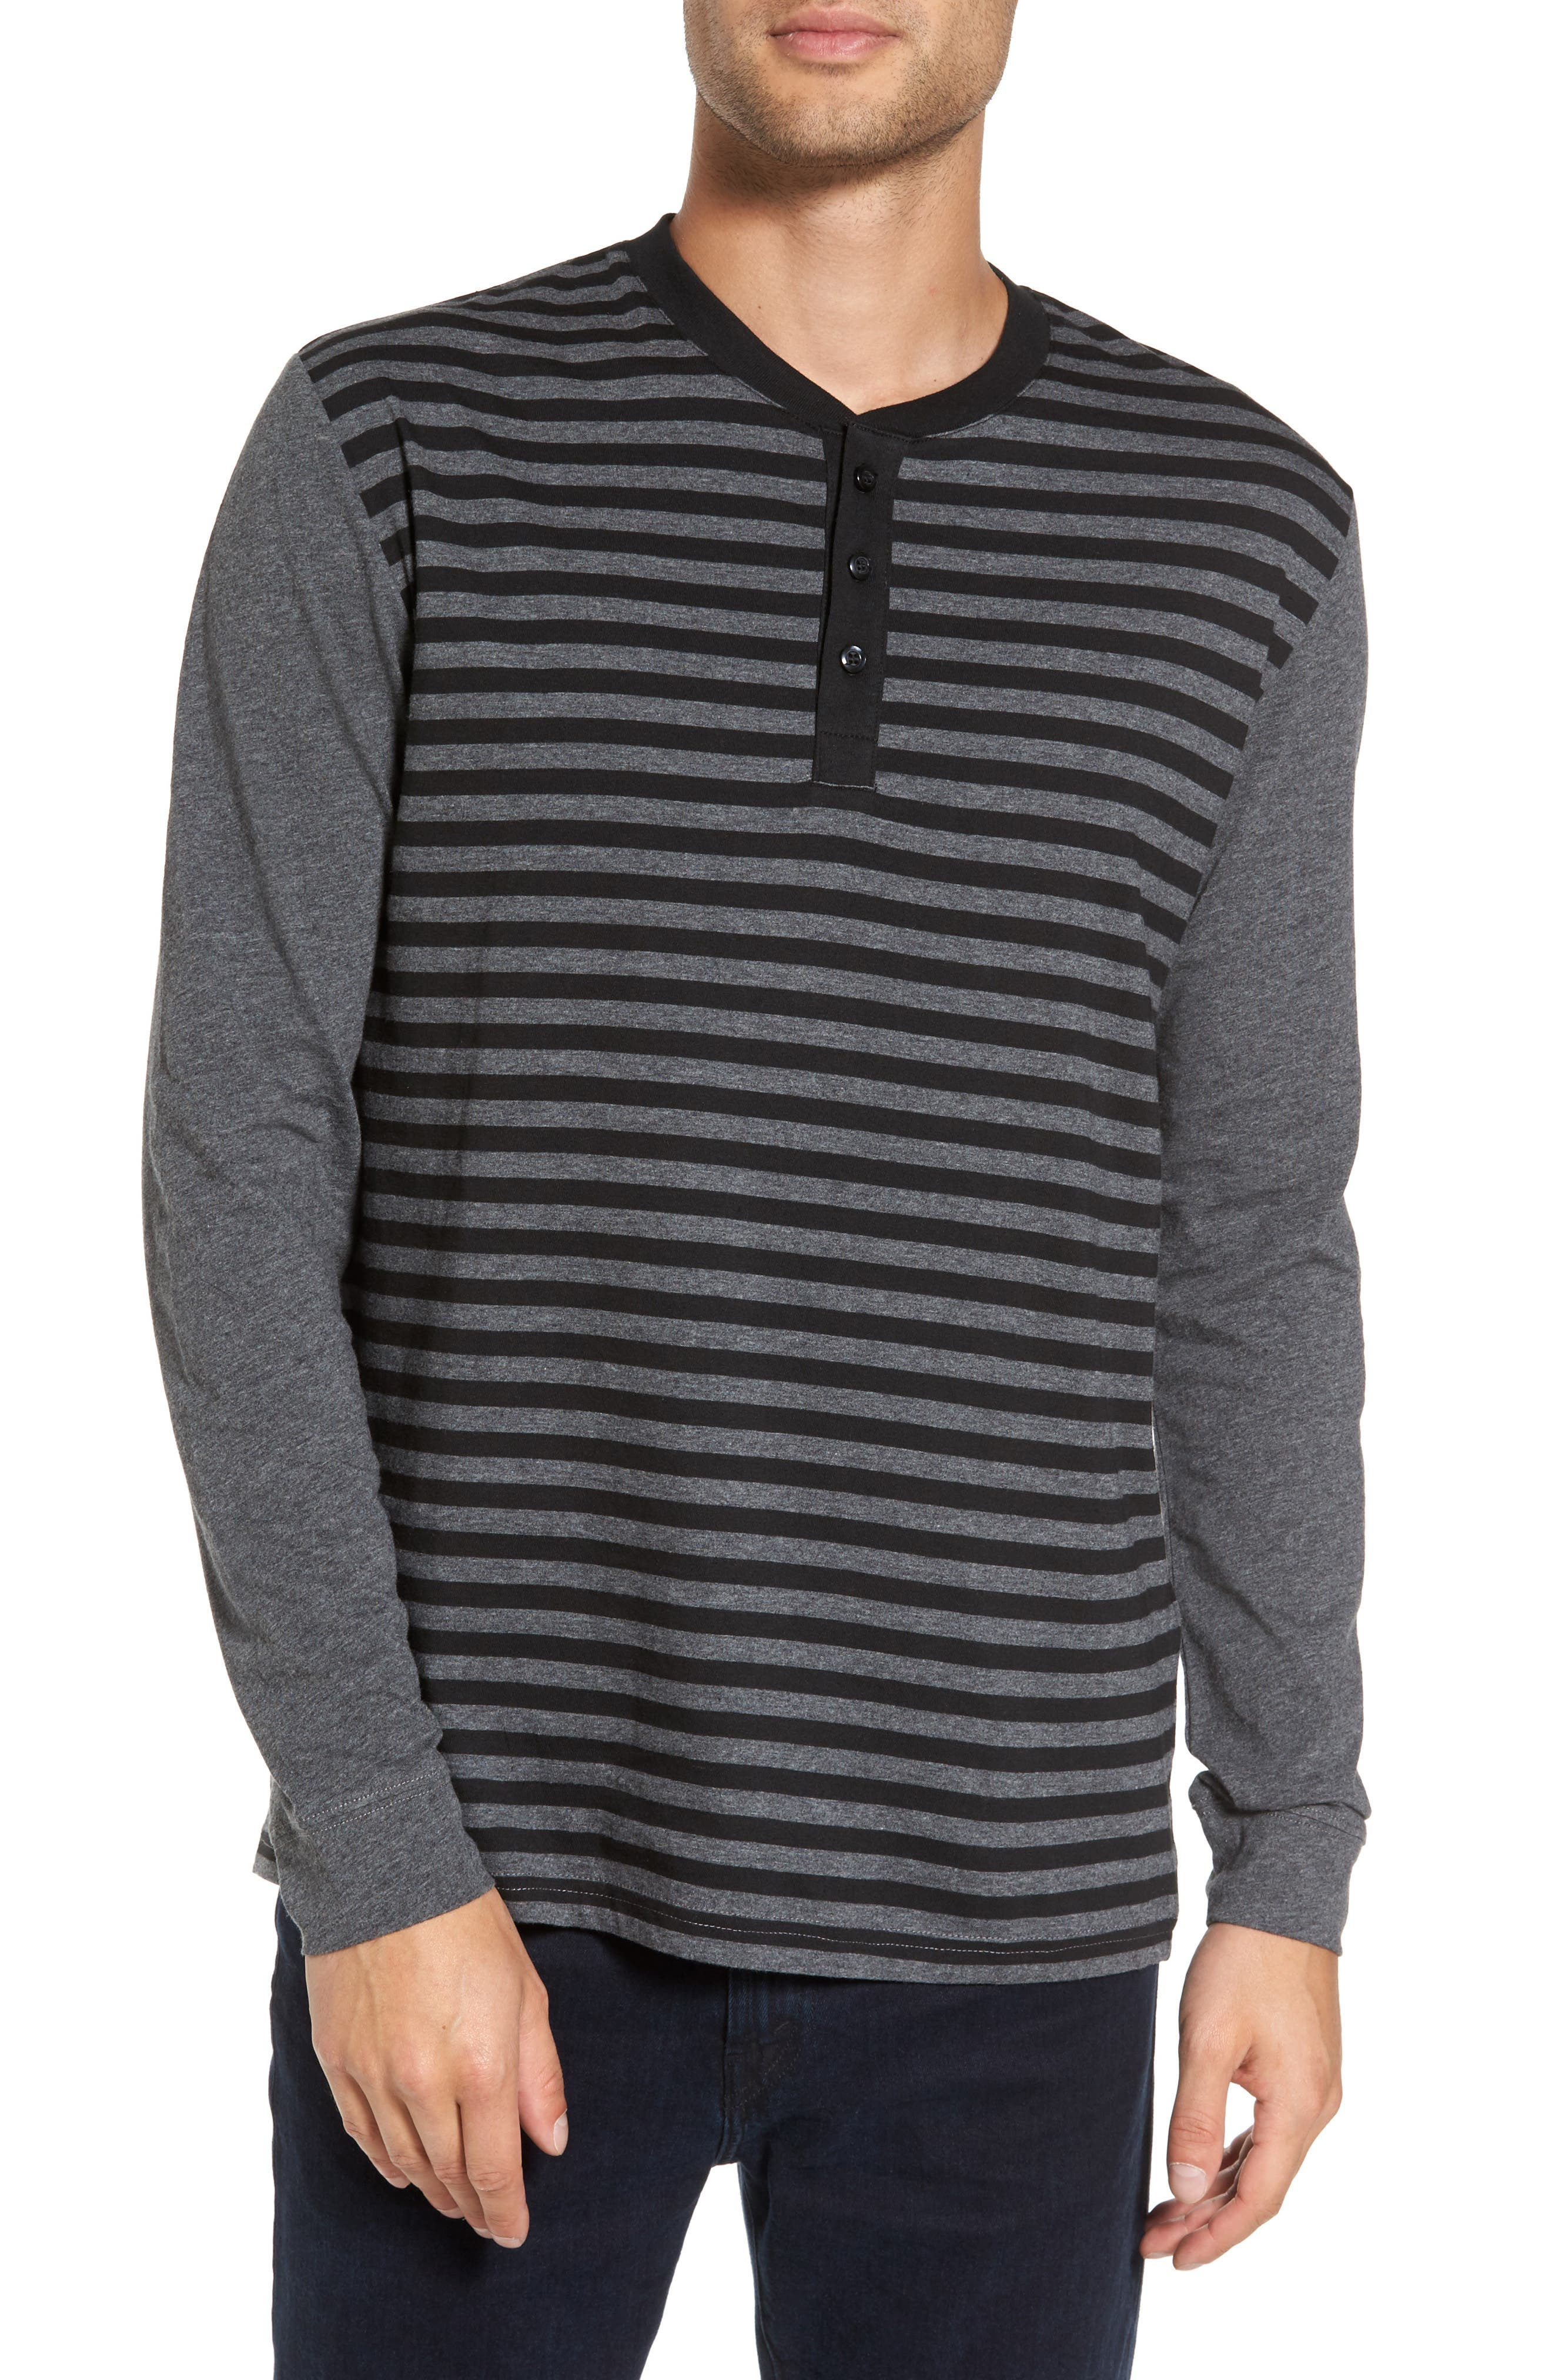 Striped Long Sleeve Henley T-Shirt,                         Main,                         color, Heather Charcoal/ Black Stripe